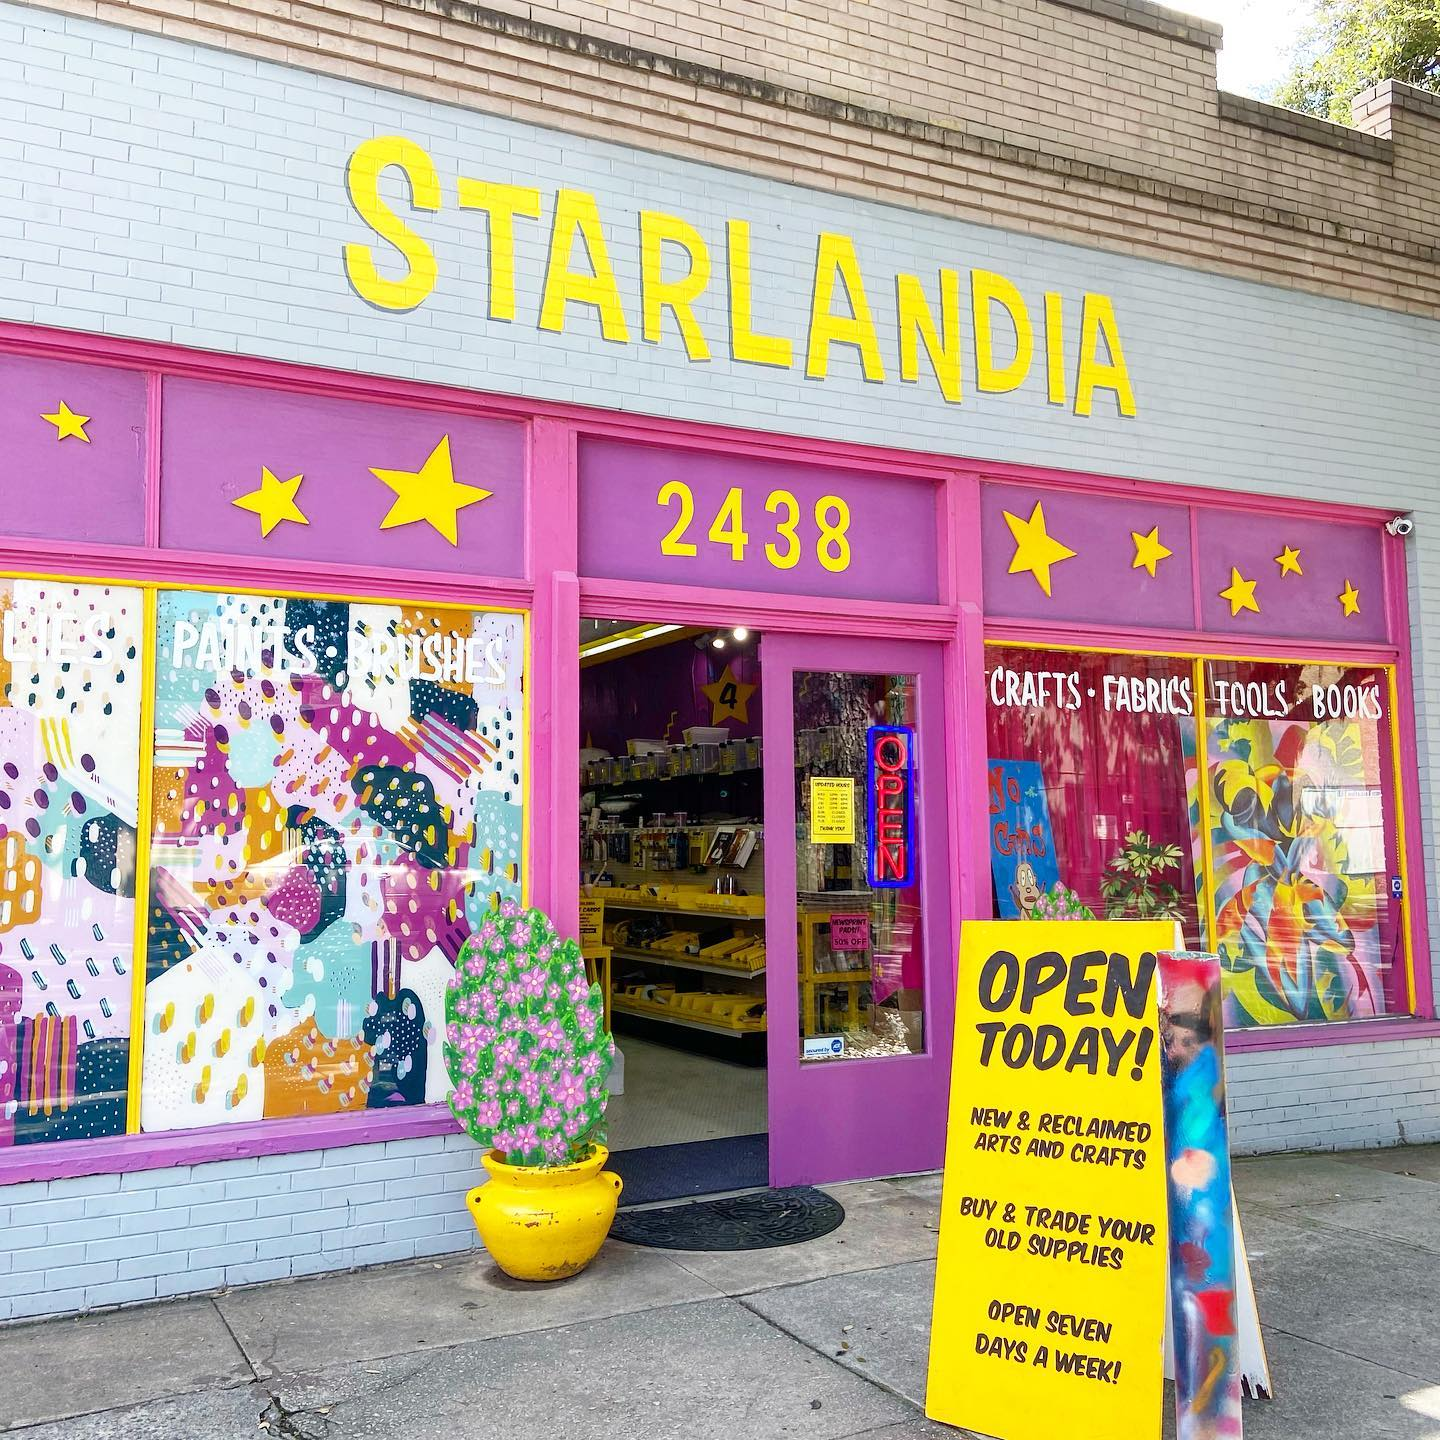 Starlandia's storefront in beautiful Savannah, Georgia.